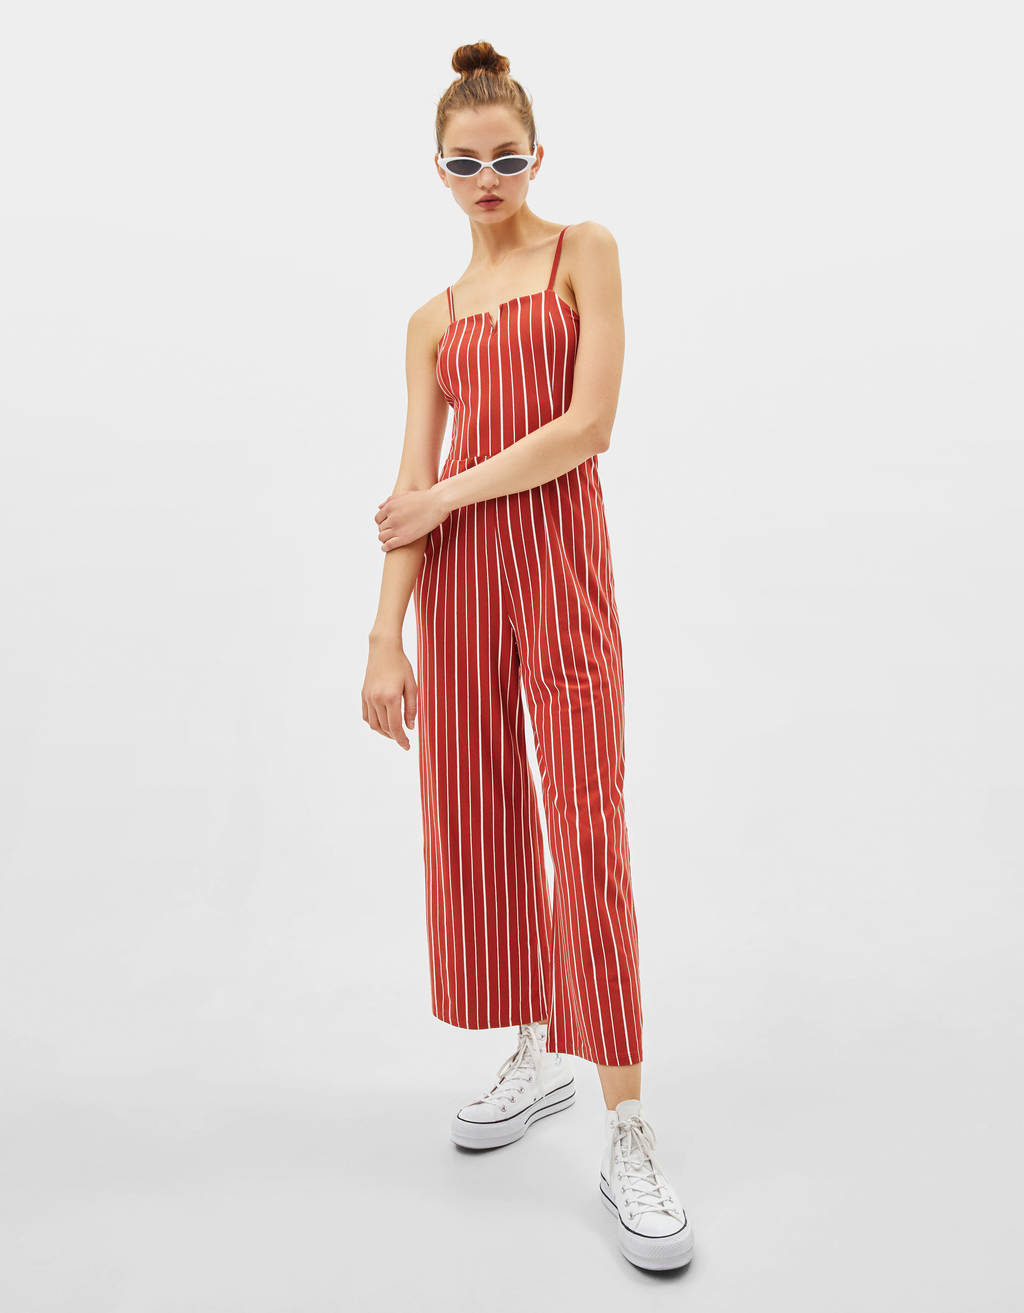 Combi-pantalon à encolure carrée